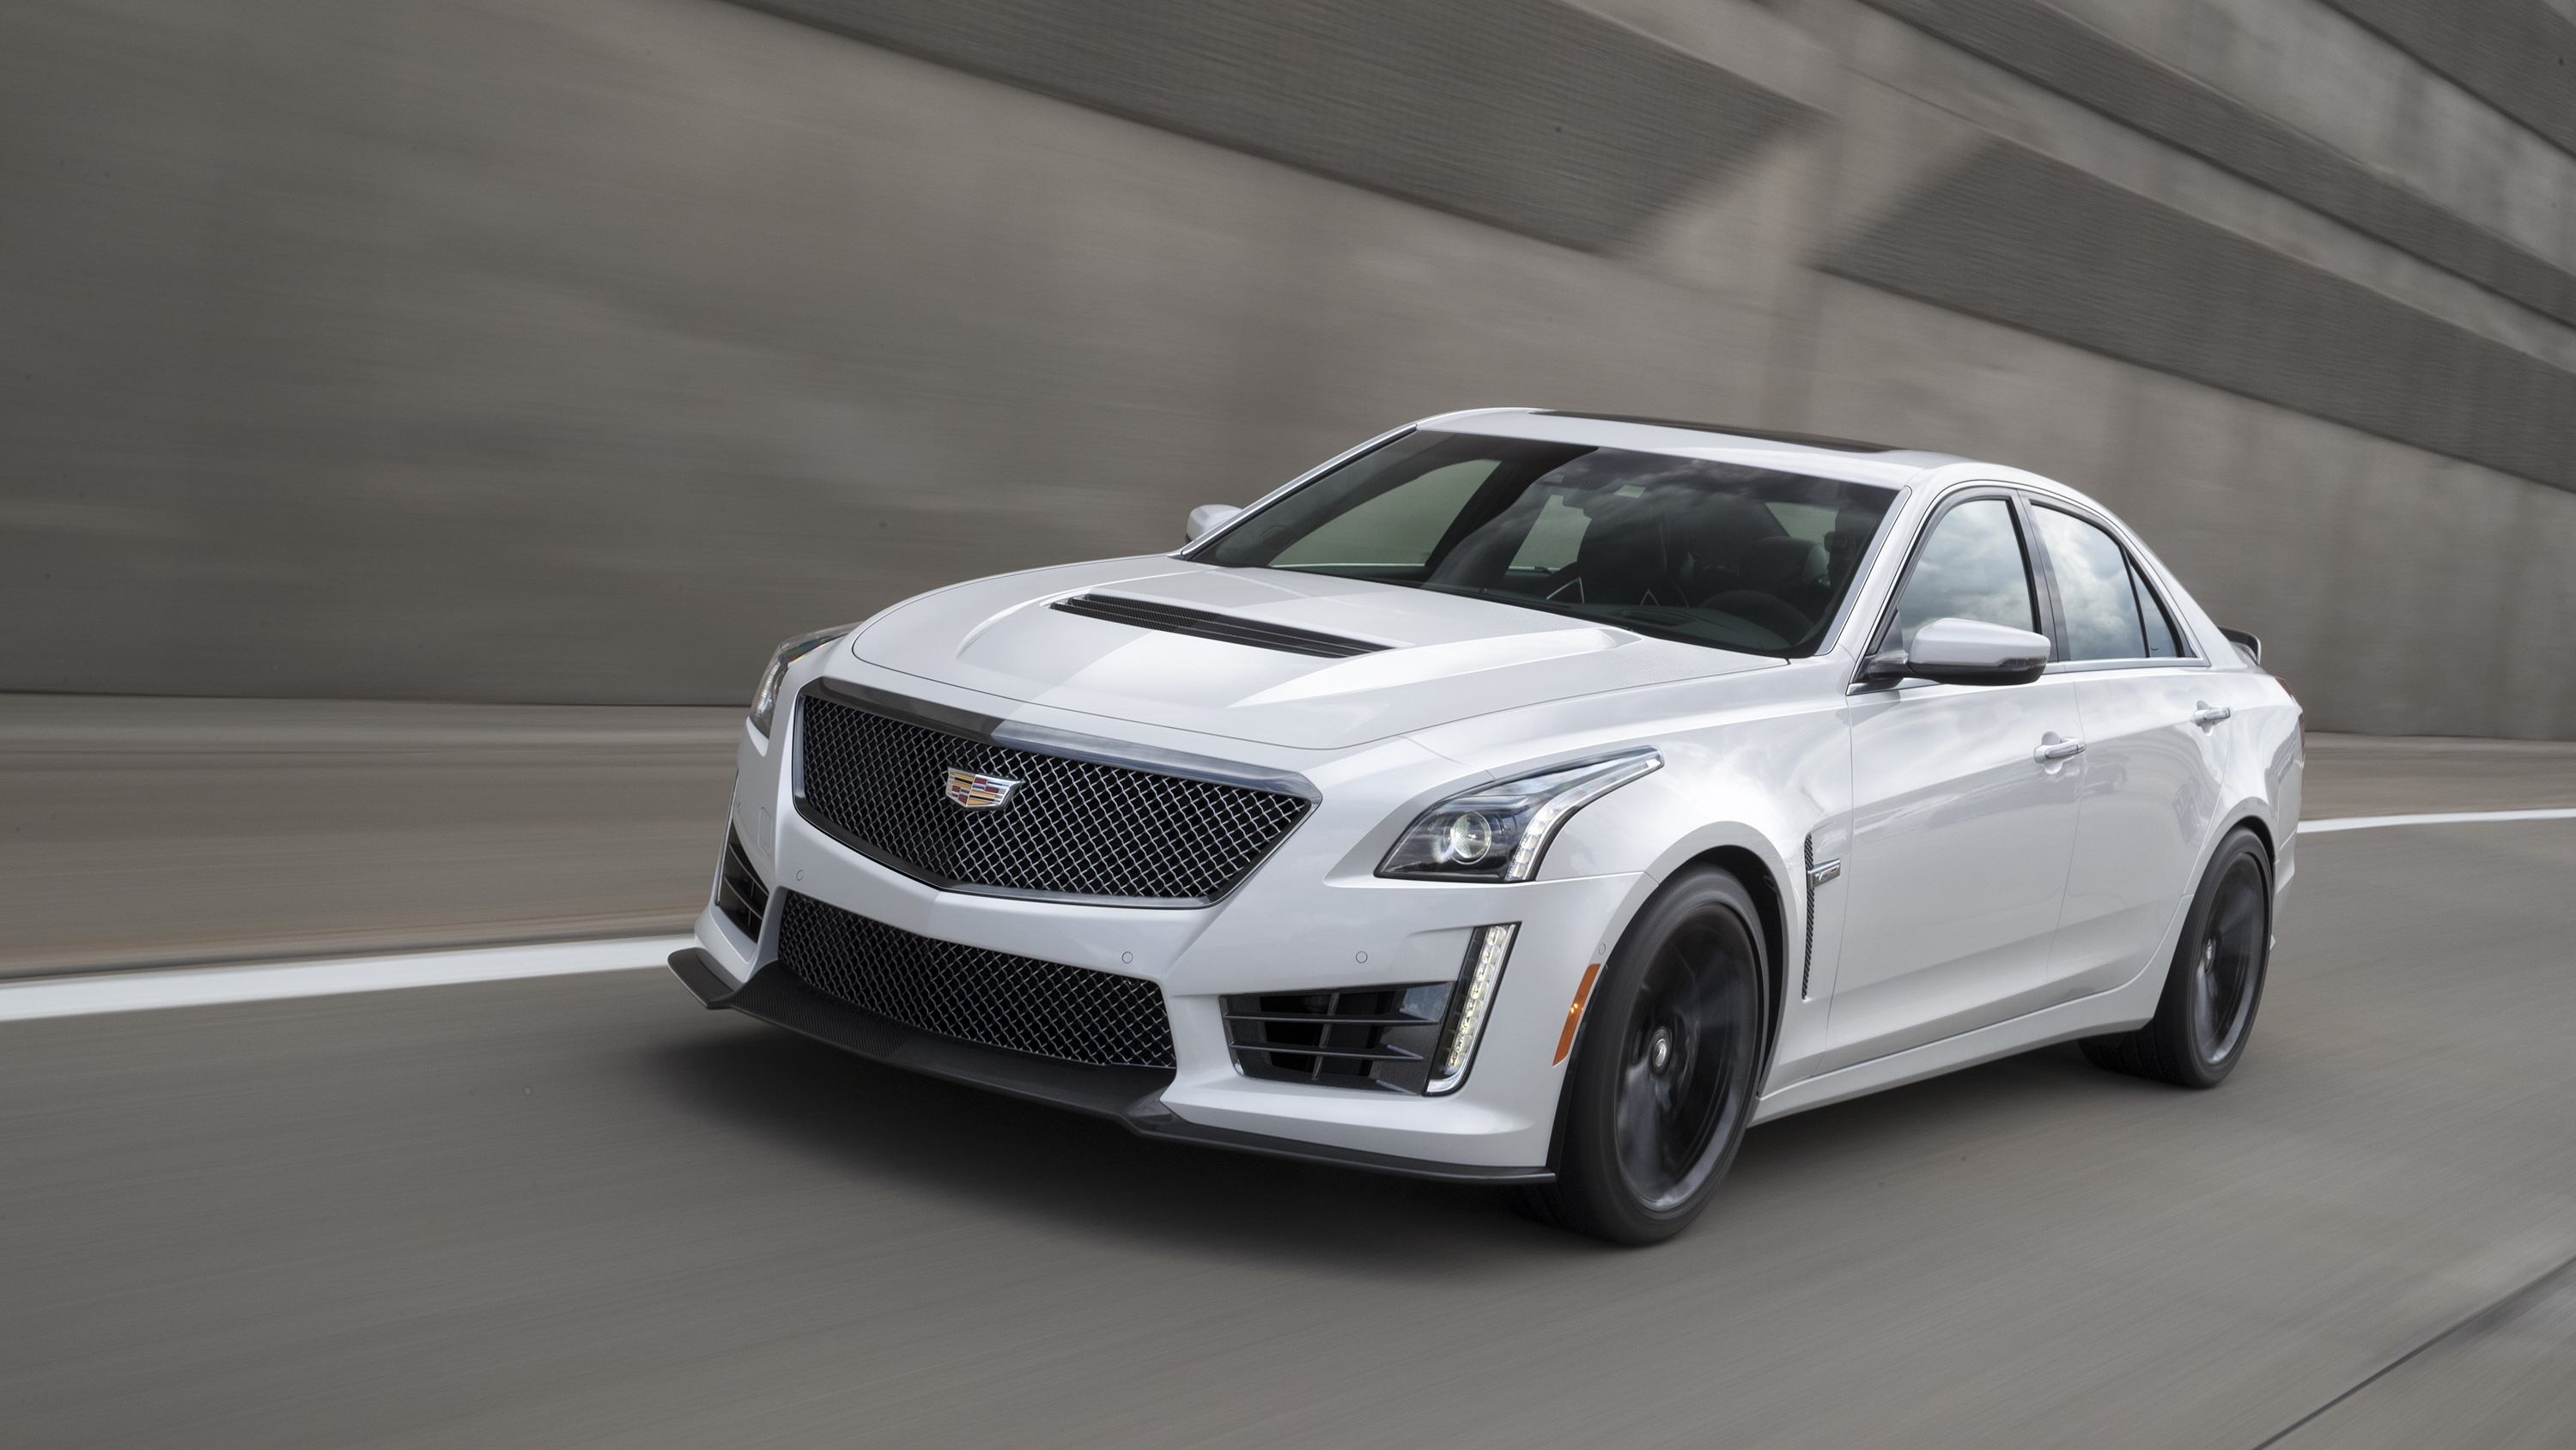 The Third Generation Cadillac CTS Was Launched For The 2014 Model Year And,  Unlike Its Predecessor, It Received A More Revolutionary Styling With  Sportier ...